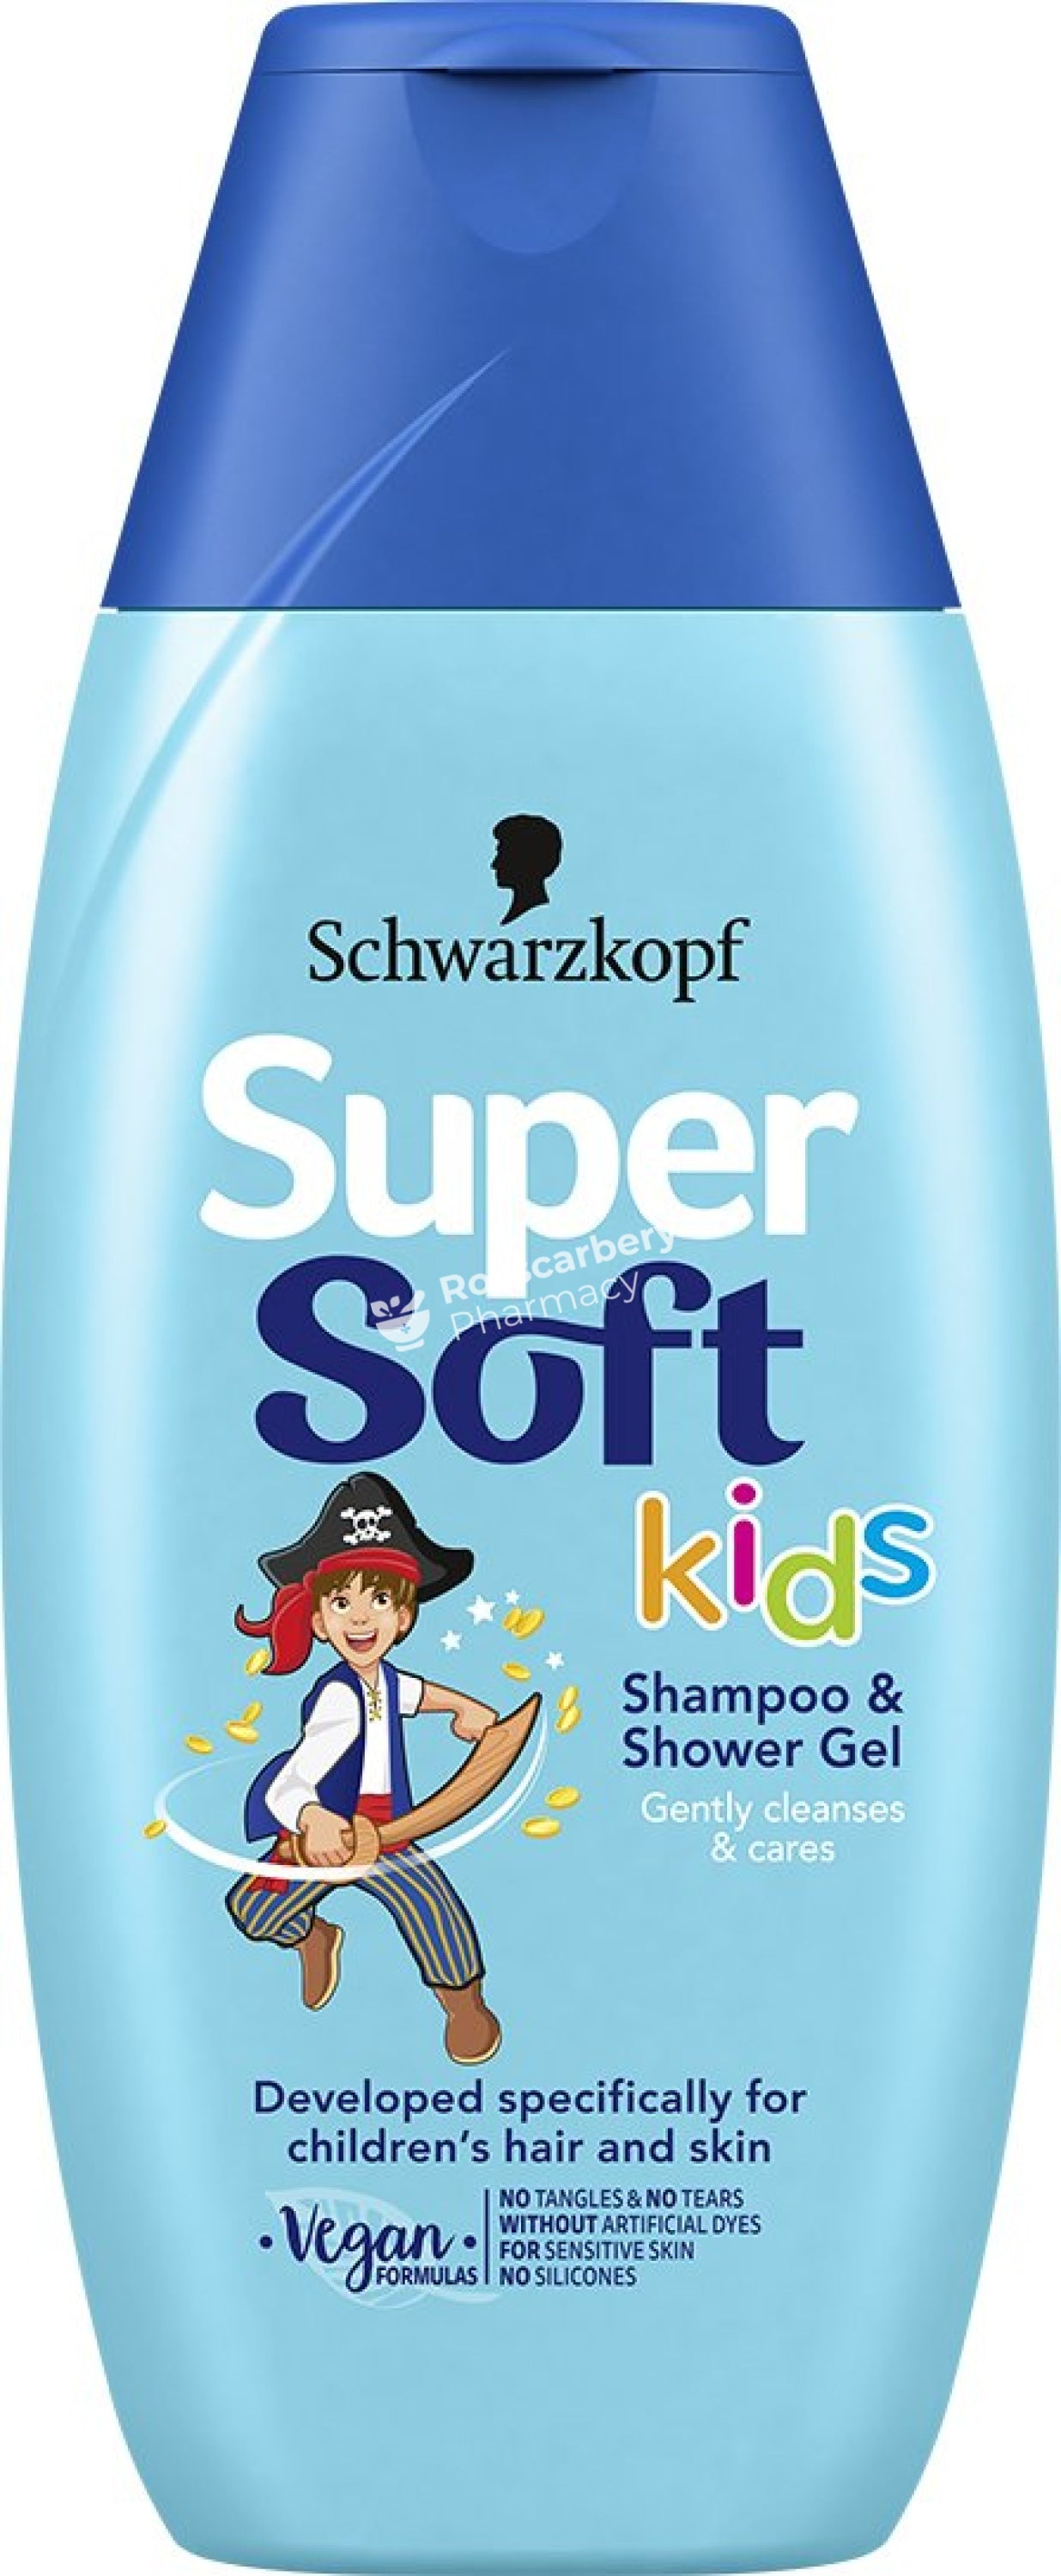 Schwarzkopf - Supersoft Kids 2In1 Shampoo & Shower Gel